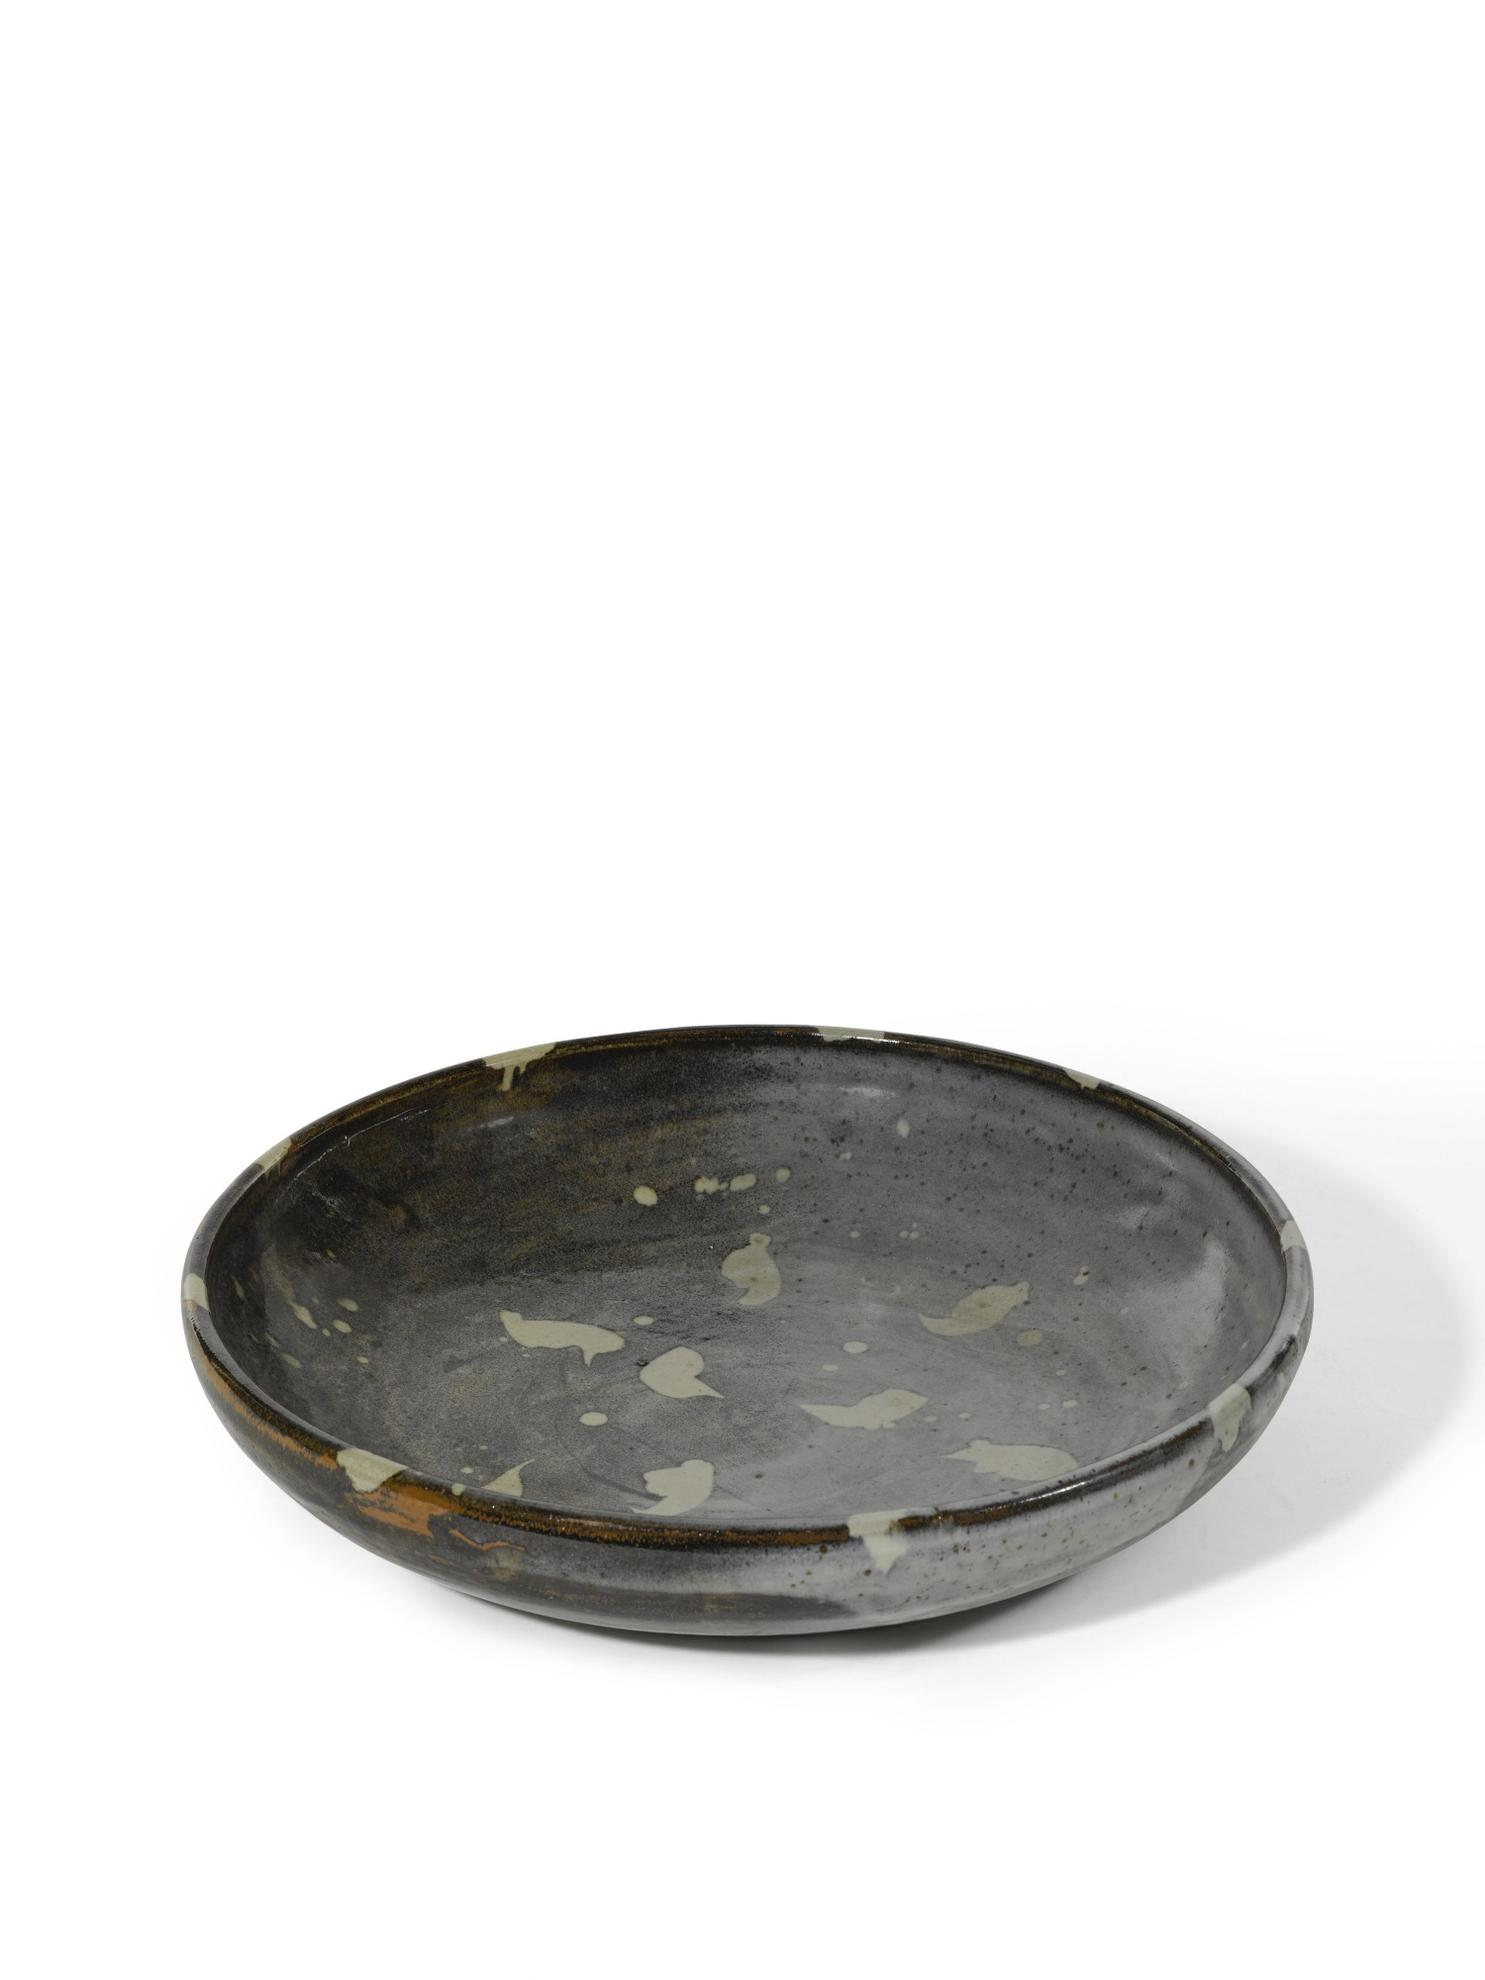 William Marshall-Large Bowl-